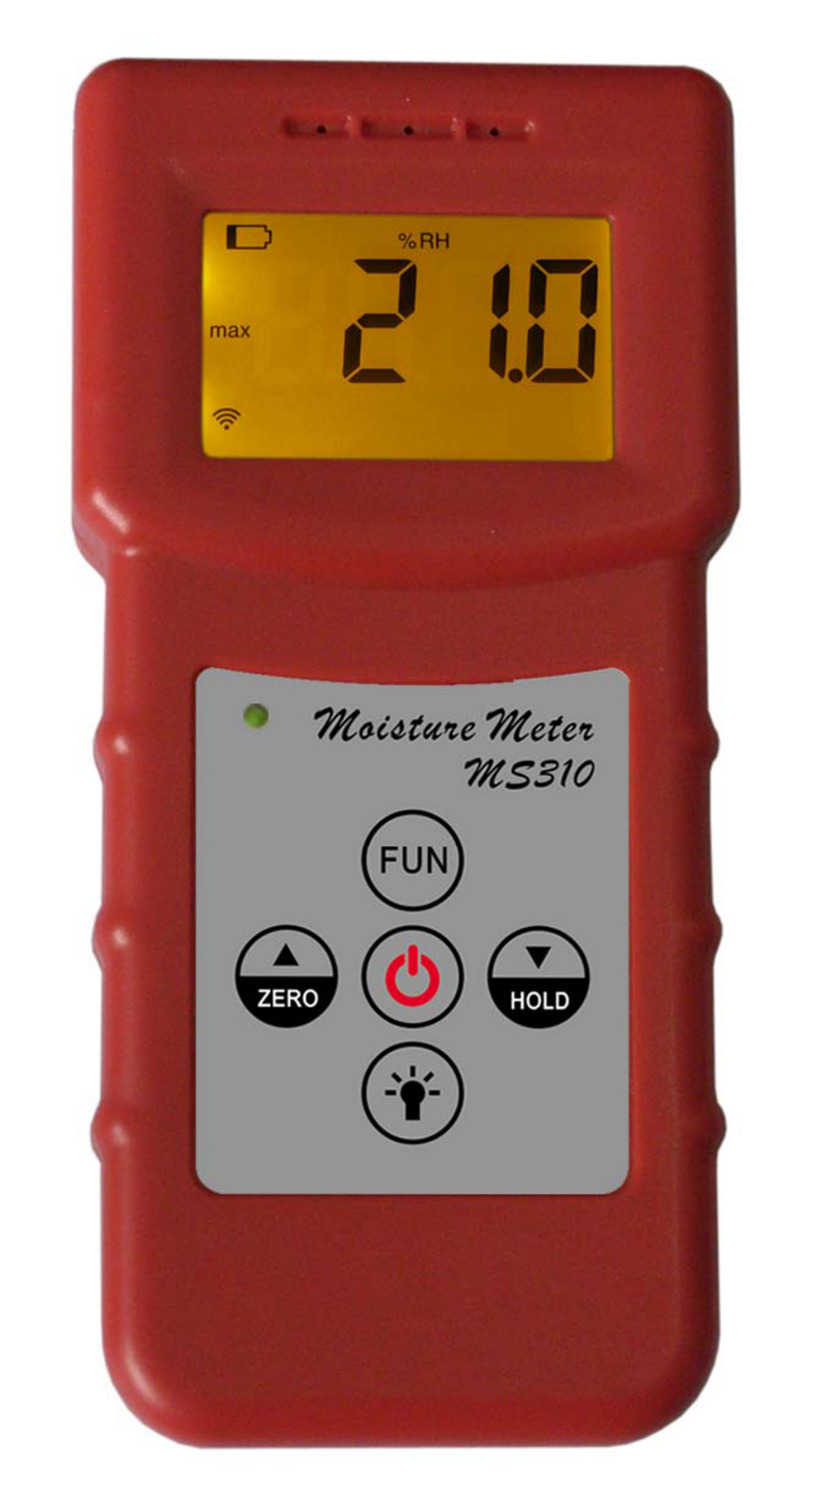 Inductive moisture meter MS310 FOR woodwork,paper making,flakeboard,furniture,building,timber traders concrete wood.. mc7812 induction tobacco moisture meter cotton paper building soil fibre materials moisture meter